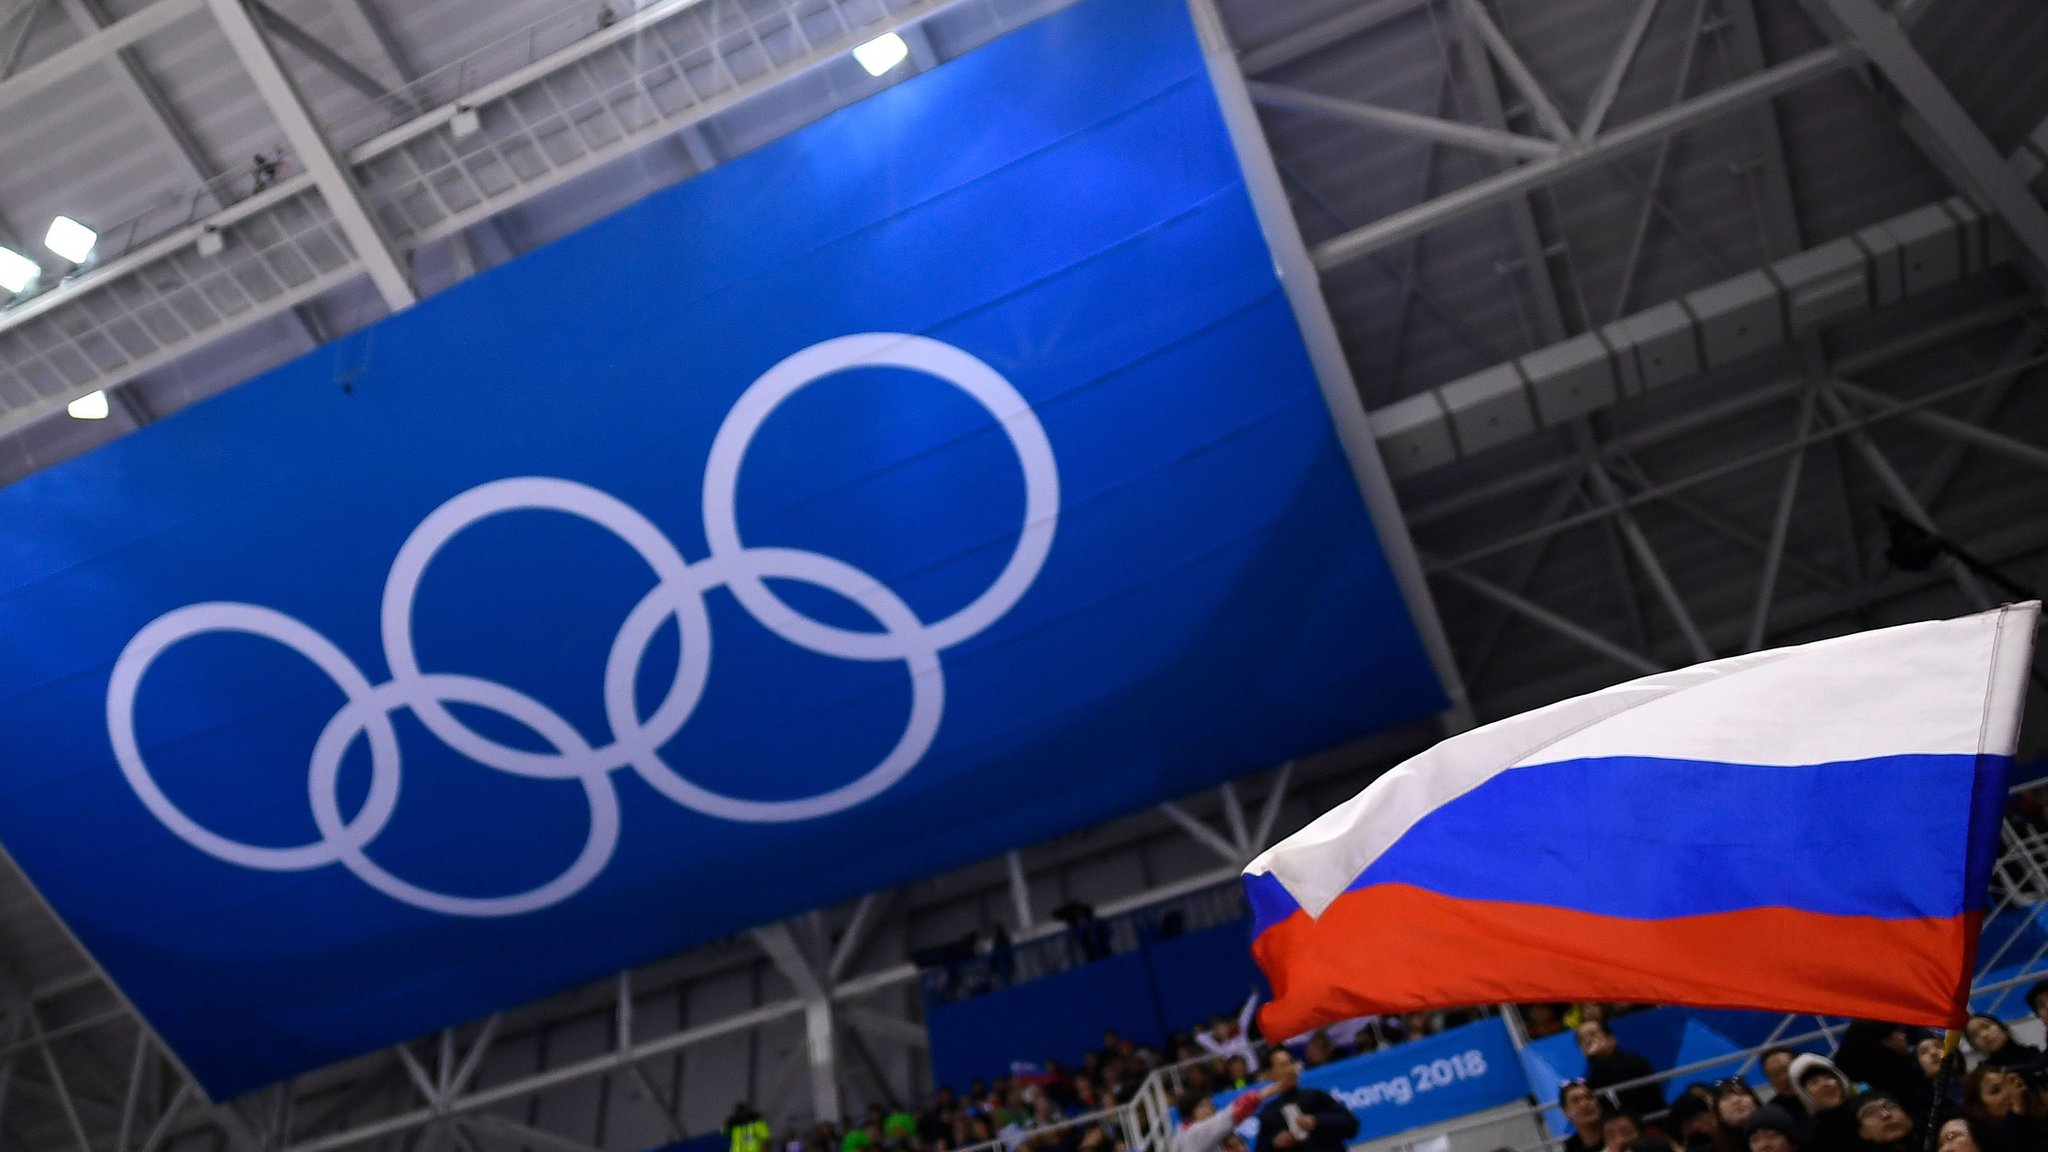 Winter Olympics: Russian athlete suspected of failing doping test